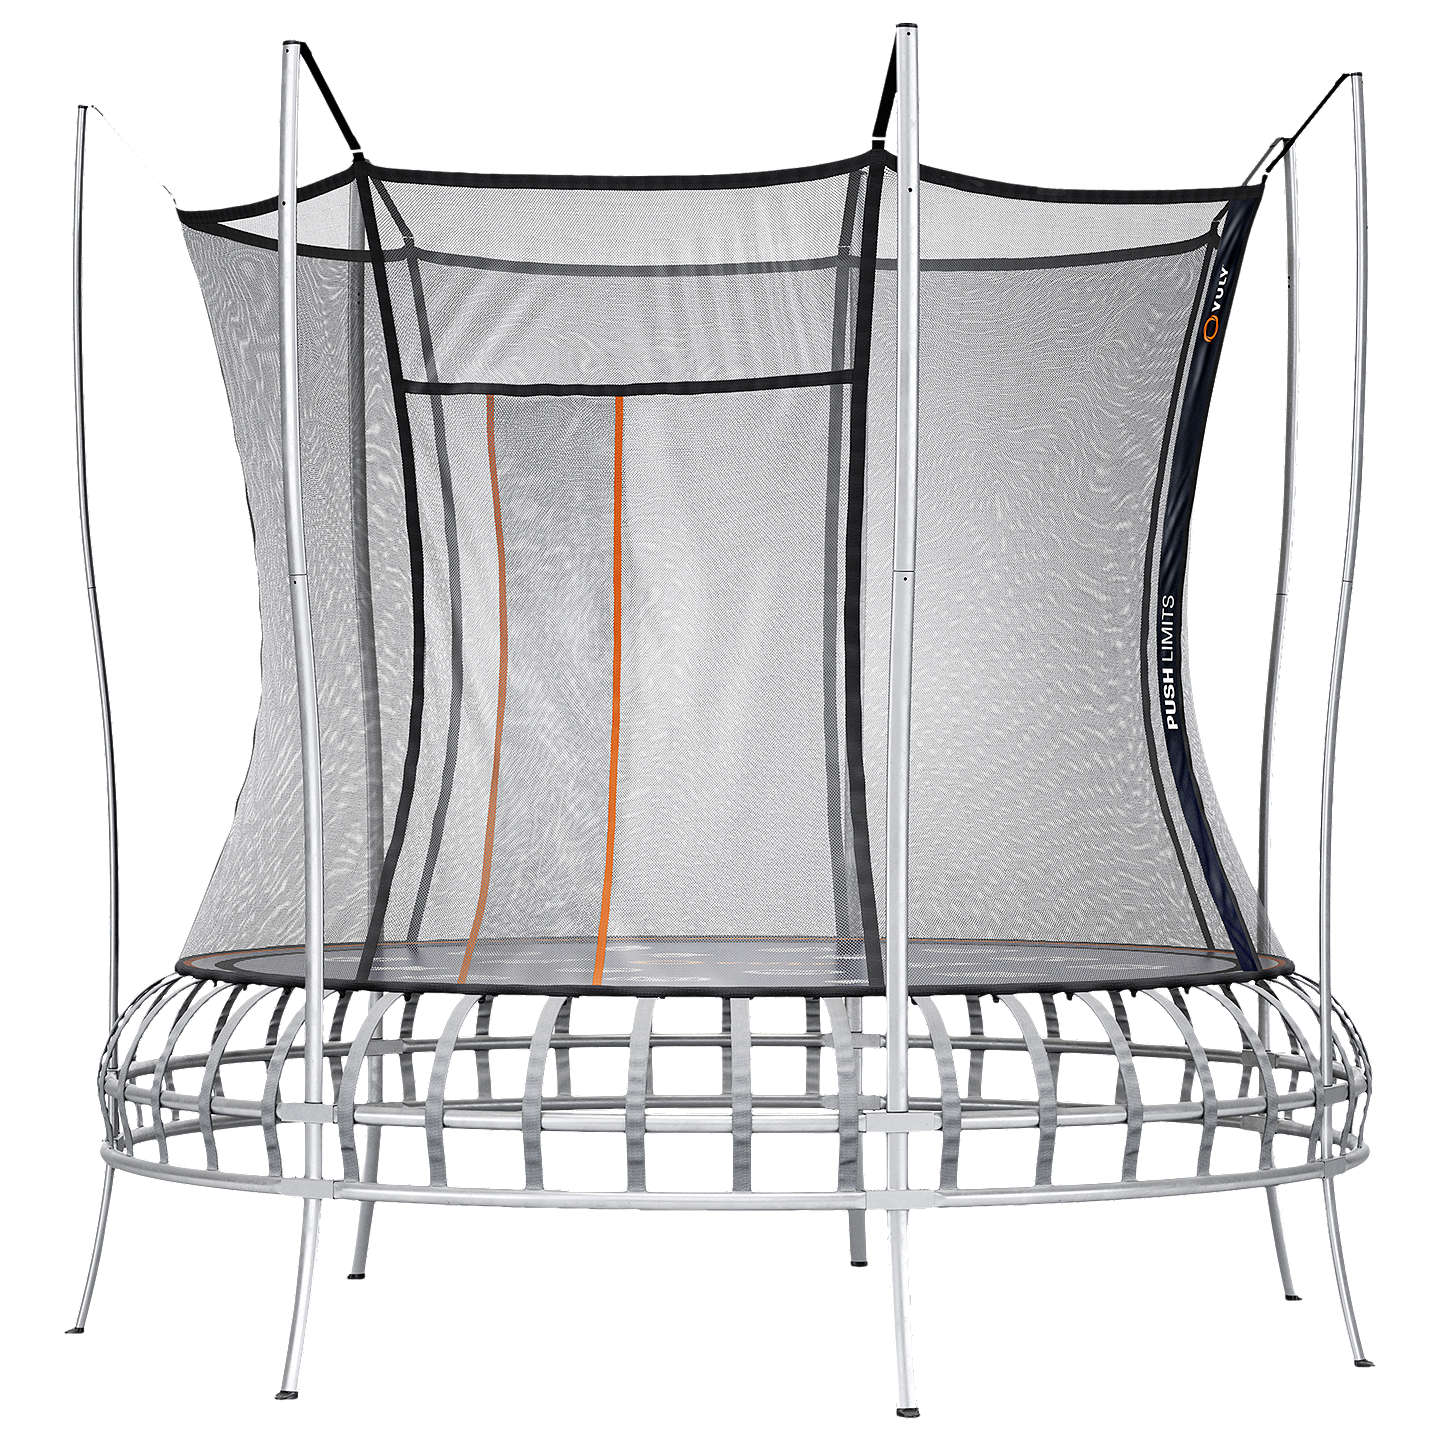 BuyTP Toys Vuly Medium Thunder Trampoline Online at johnlewis.com